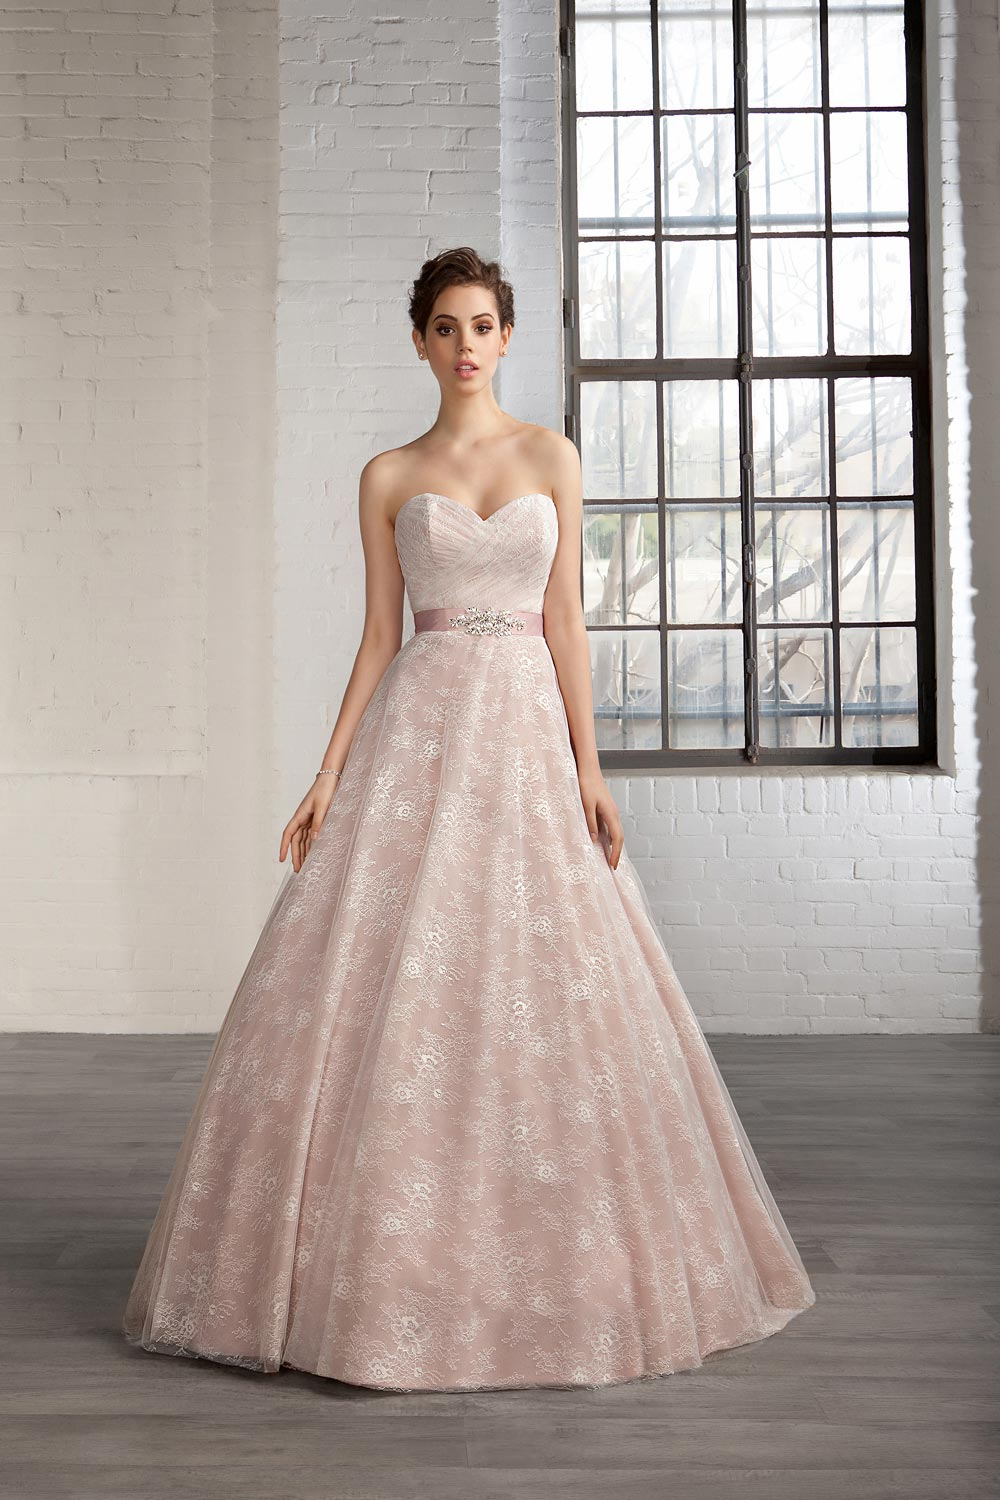 Image from: https://www.hitched.co.uk/wedding-planning/bridalwear-articles/pink-wedding-dresses_721.htm